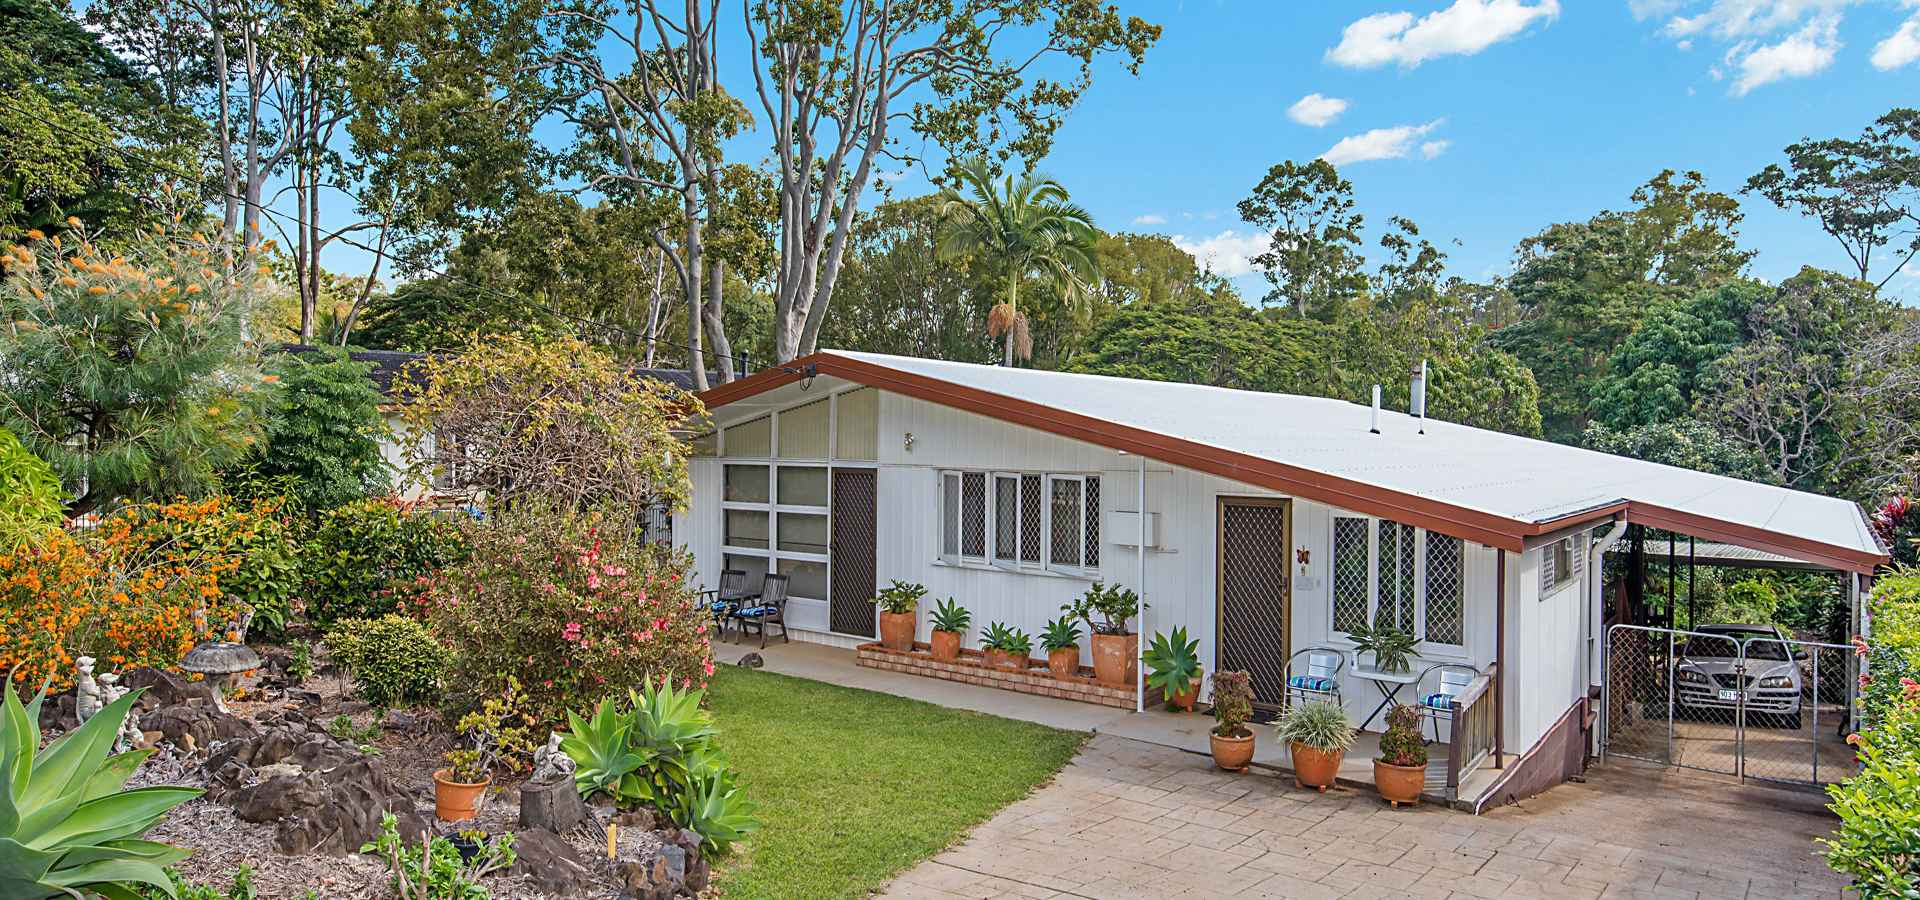 ENVIABLE LOCATION ON TOP OF BUDERIM ON LARGE 1214M2 BLOCK